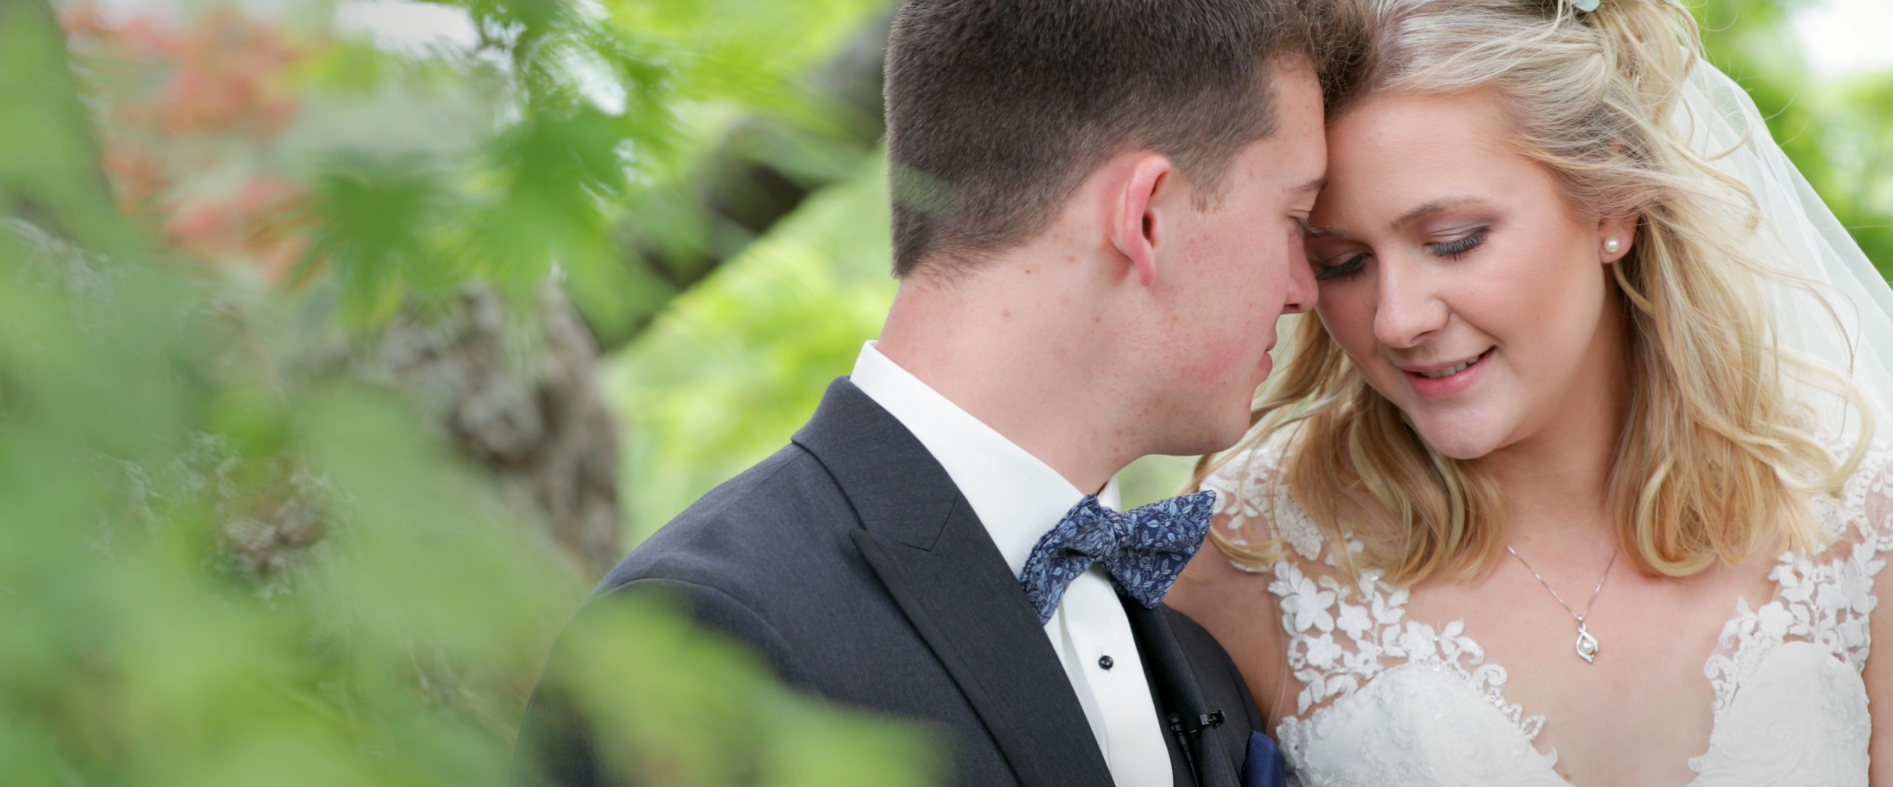 Bride and Groom kissing in pasture for their wedding video